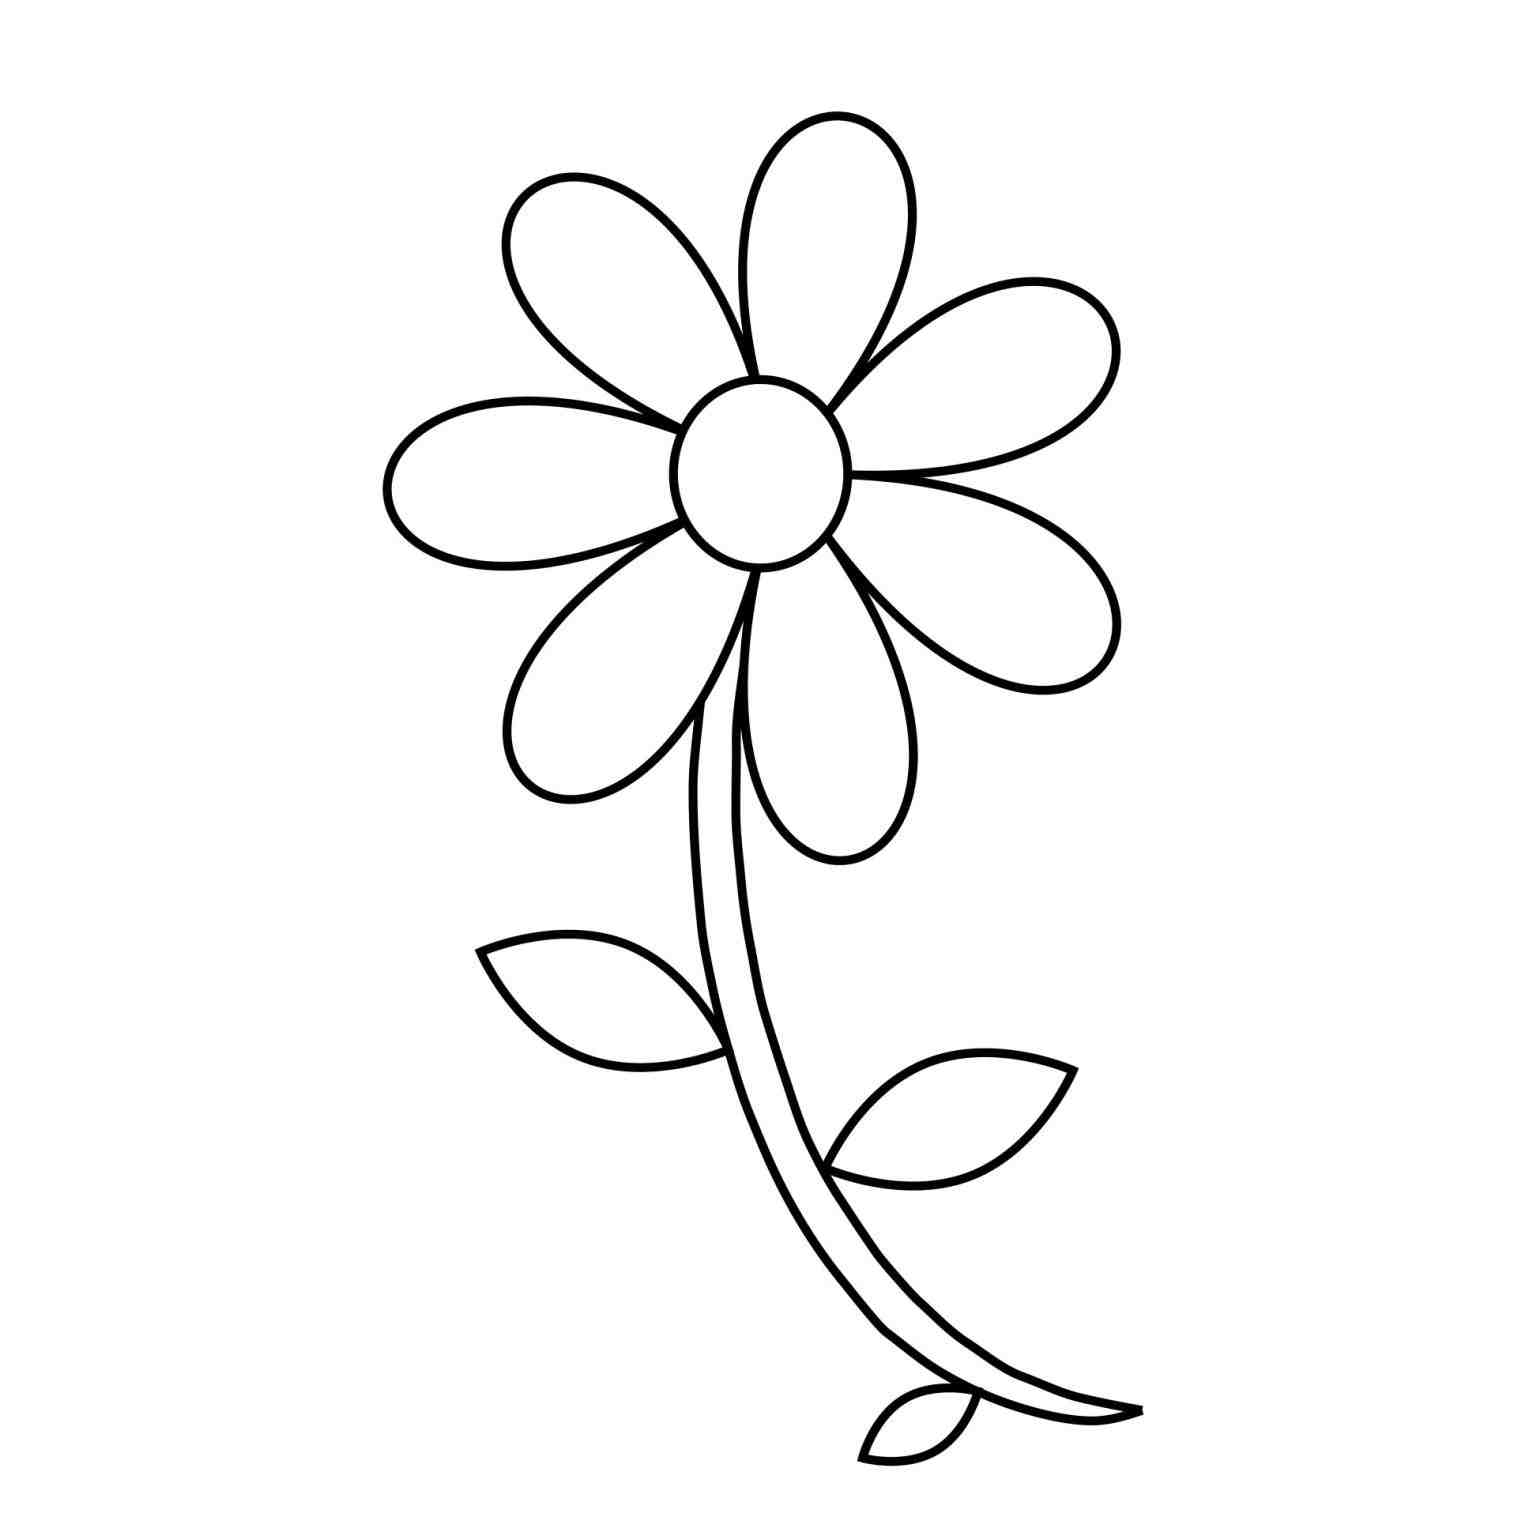 Hawaiian flower drawing free download best hawaiian flower drawing 1514x1517 how to draw hawaiian flowers step by step for kids izmirmasajfo